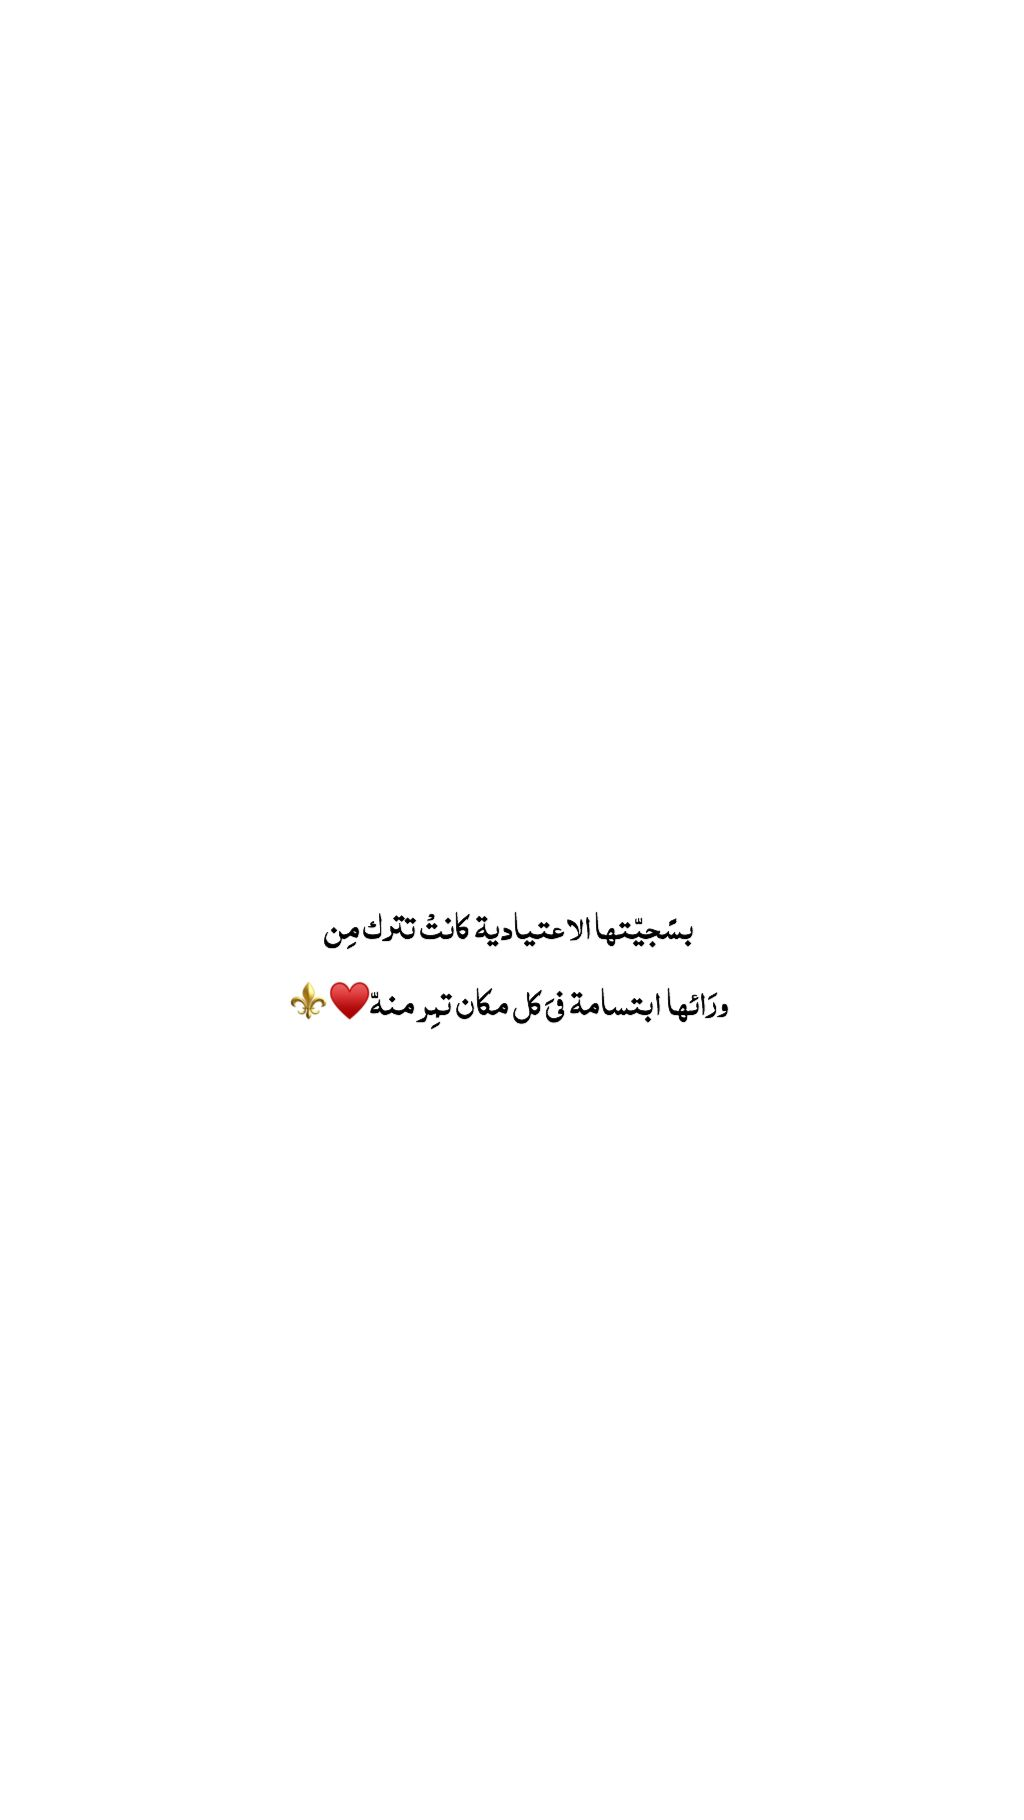 Twitter تويتر كلمات عبارات اقتباسات Words Quotes Positive Words Quotes Cool Words Islamic Love Quotes